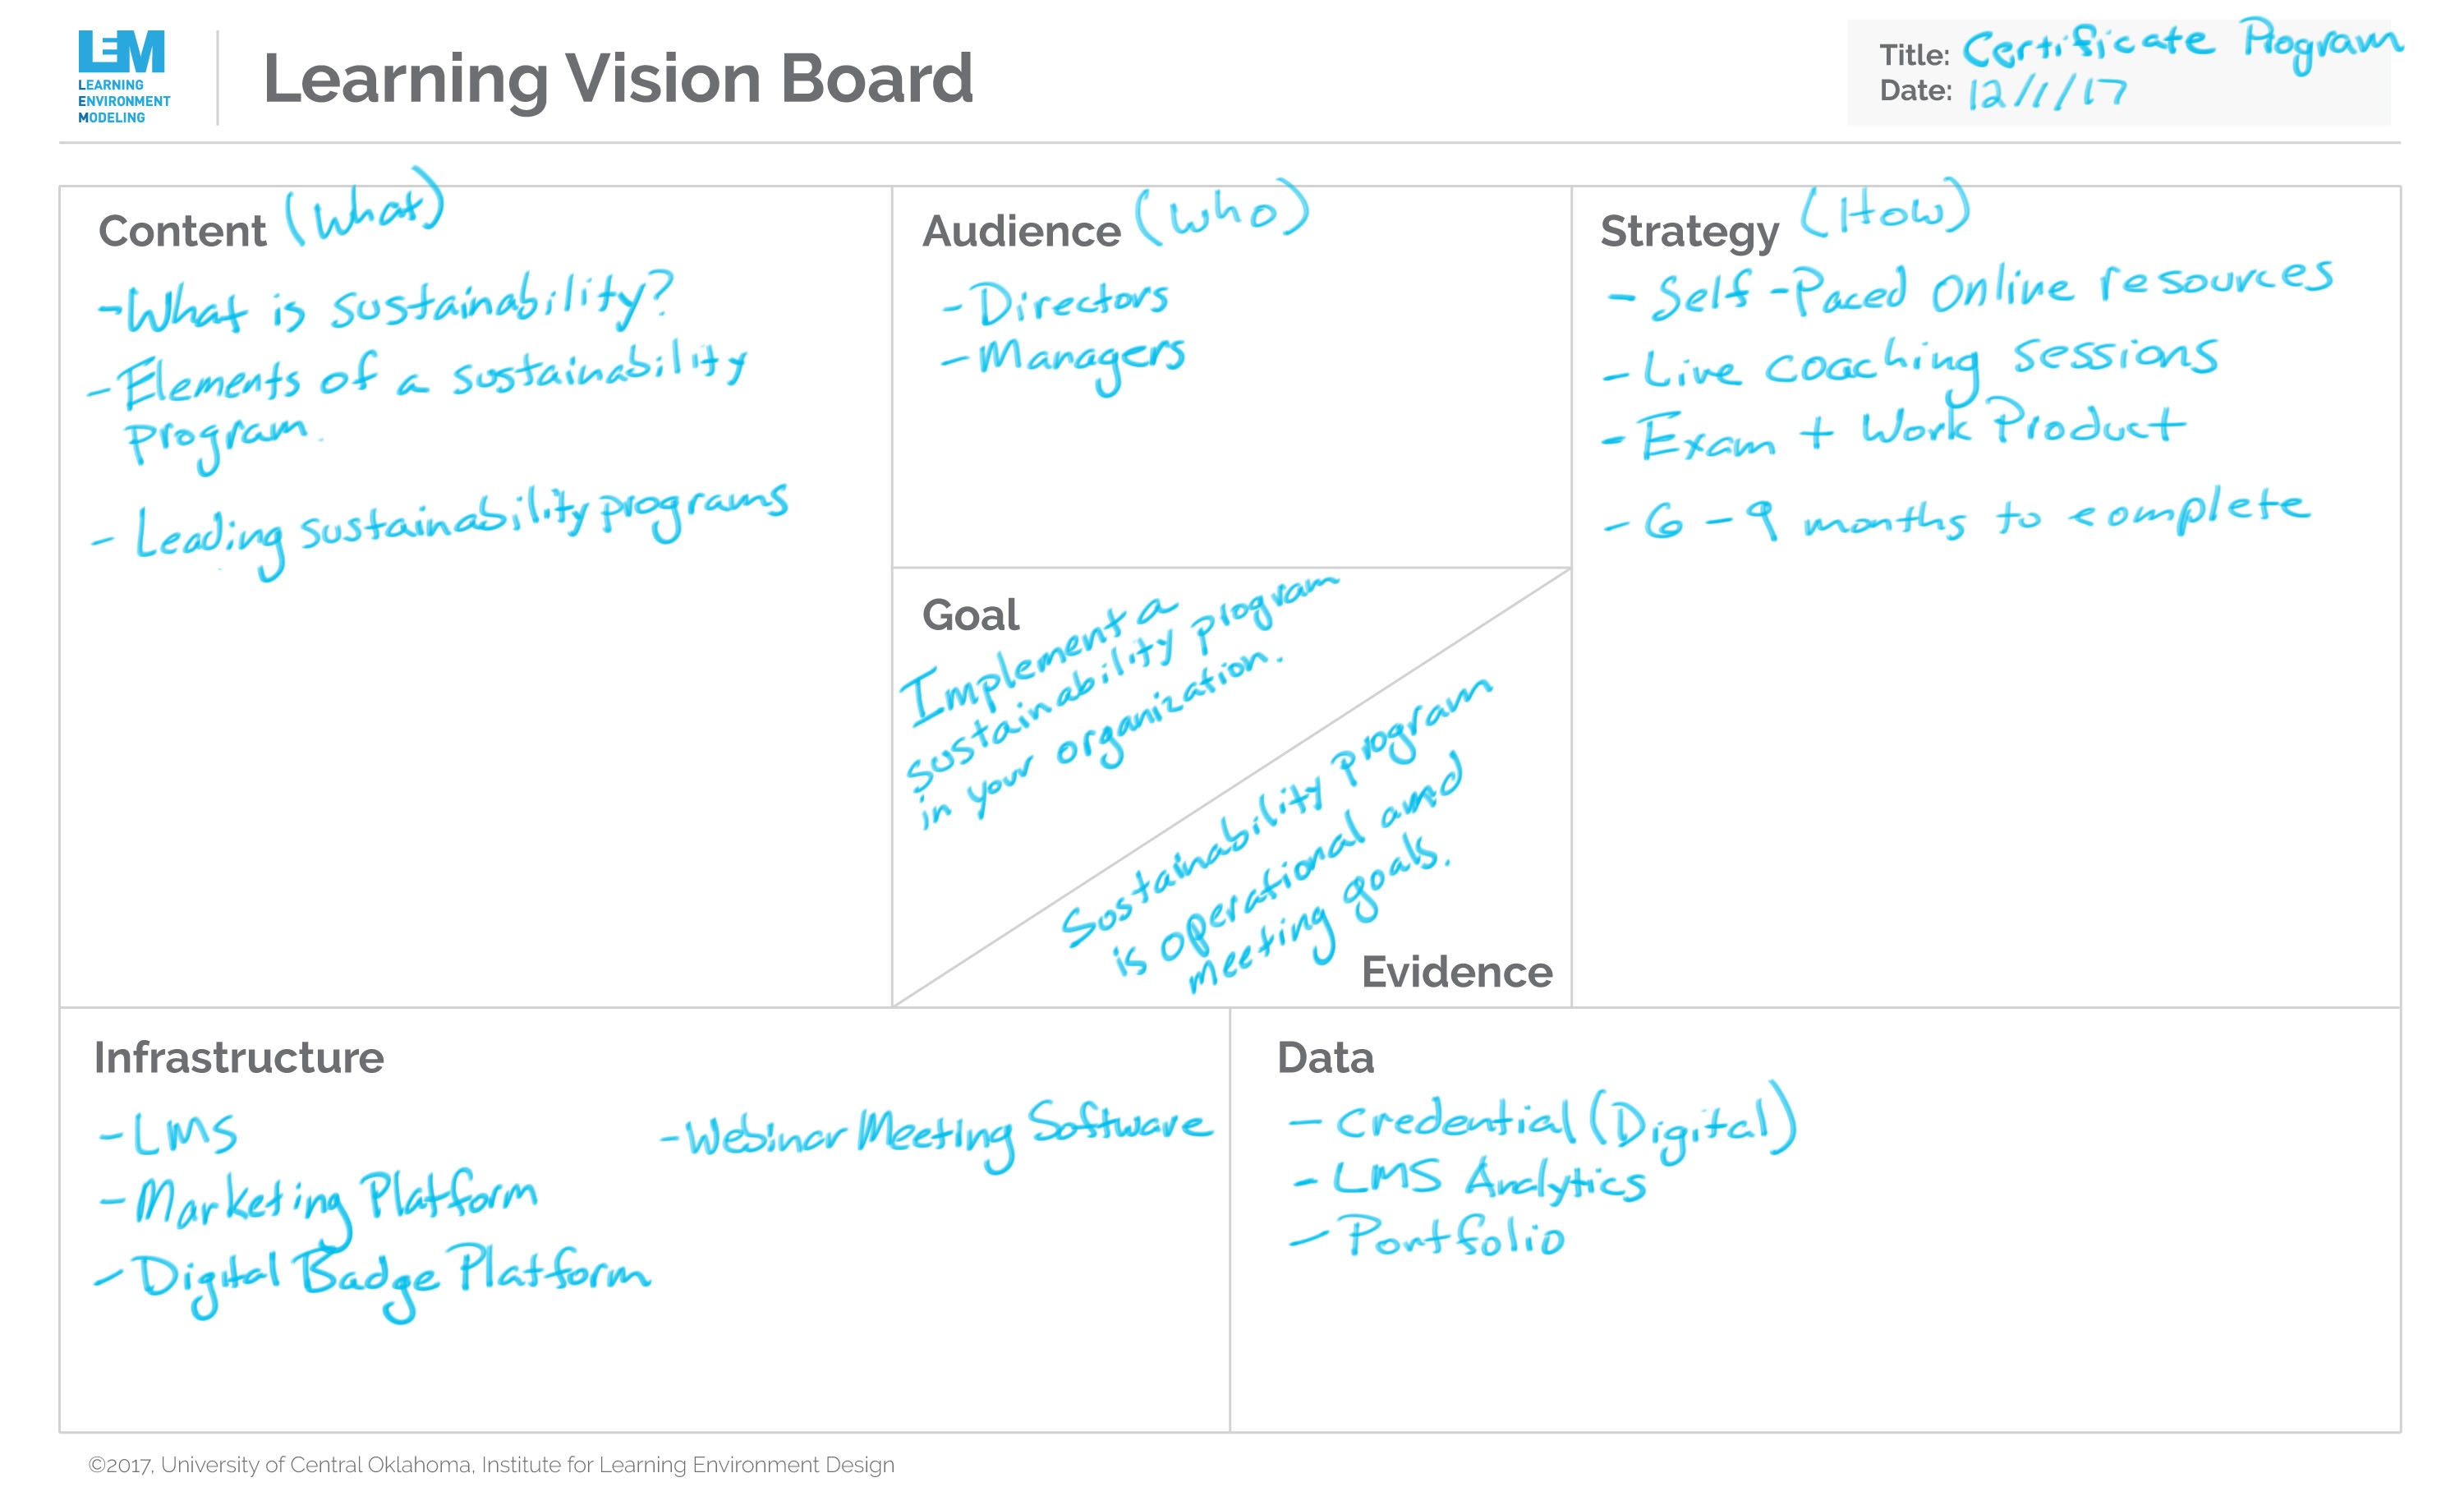 LearningVisionBoard_v01_highrez_examples_v01